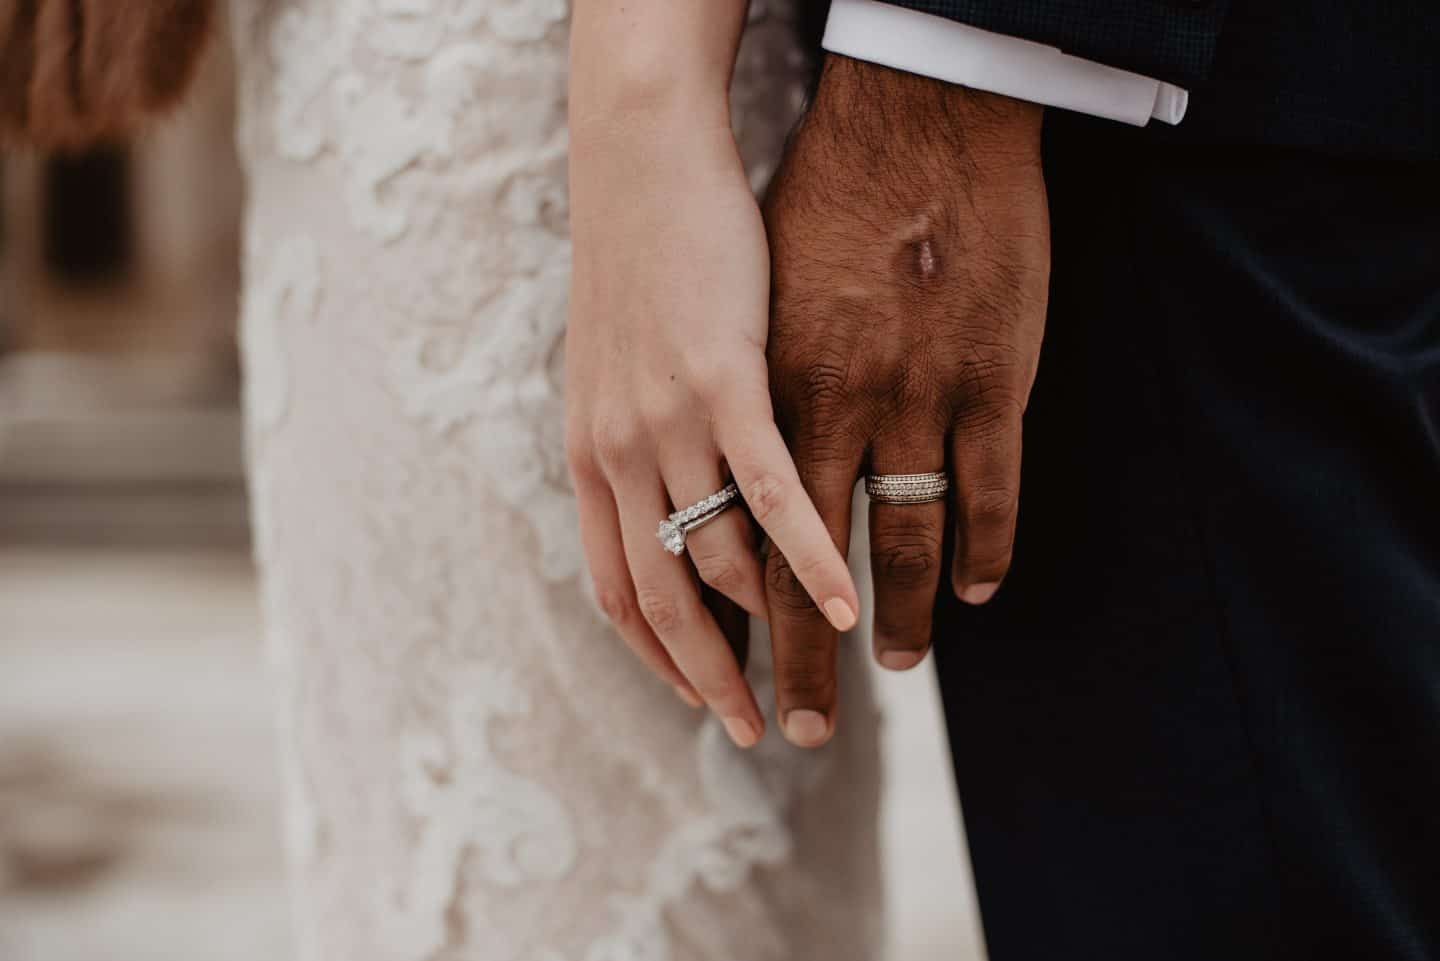 A Guide To Finding A Wedding Band During The Pandemic